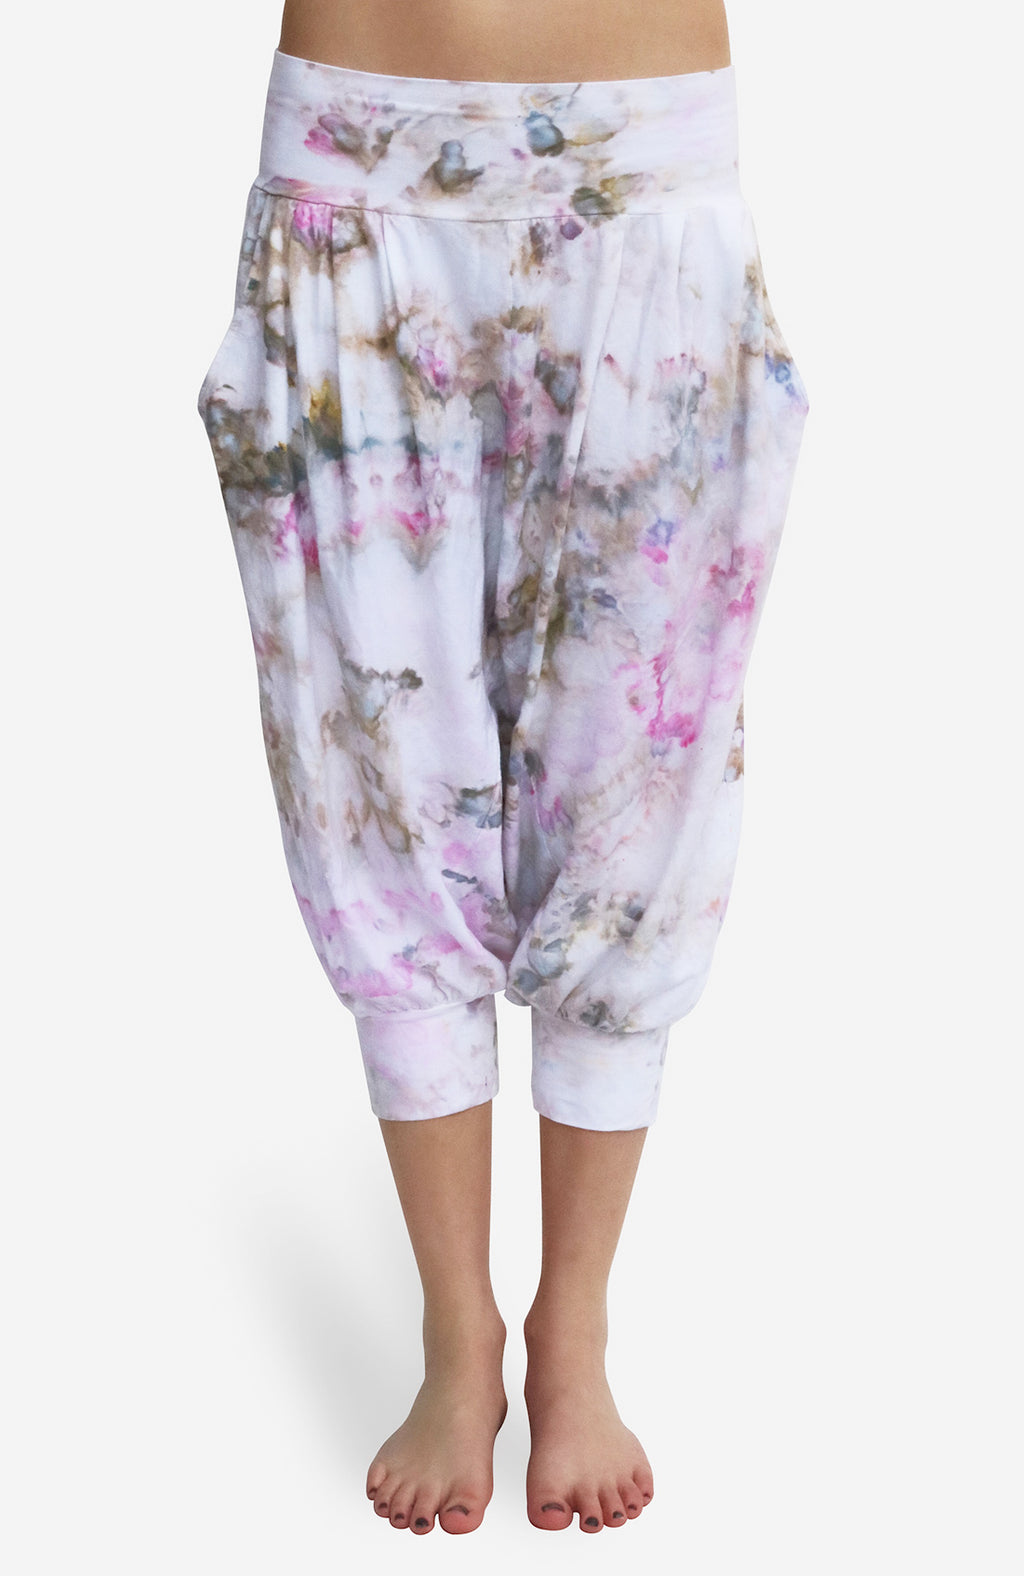 Hand Dyed Harem Capri pant in lightweight cotton lycra has a fluid drape and deep pockets. Spring rain is a floating mux of pinks and moss green and teals sparingly over a white background.